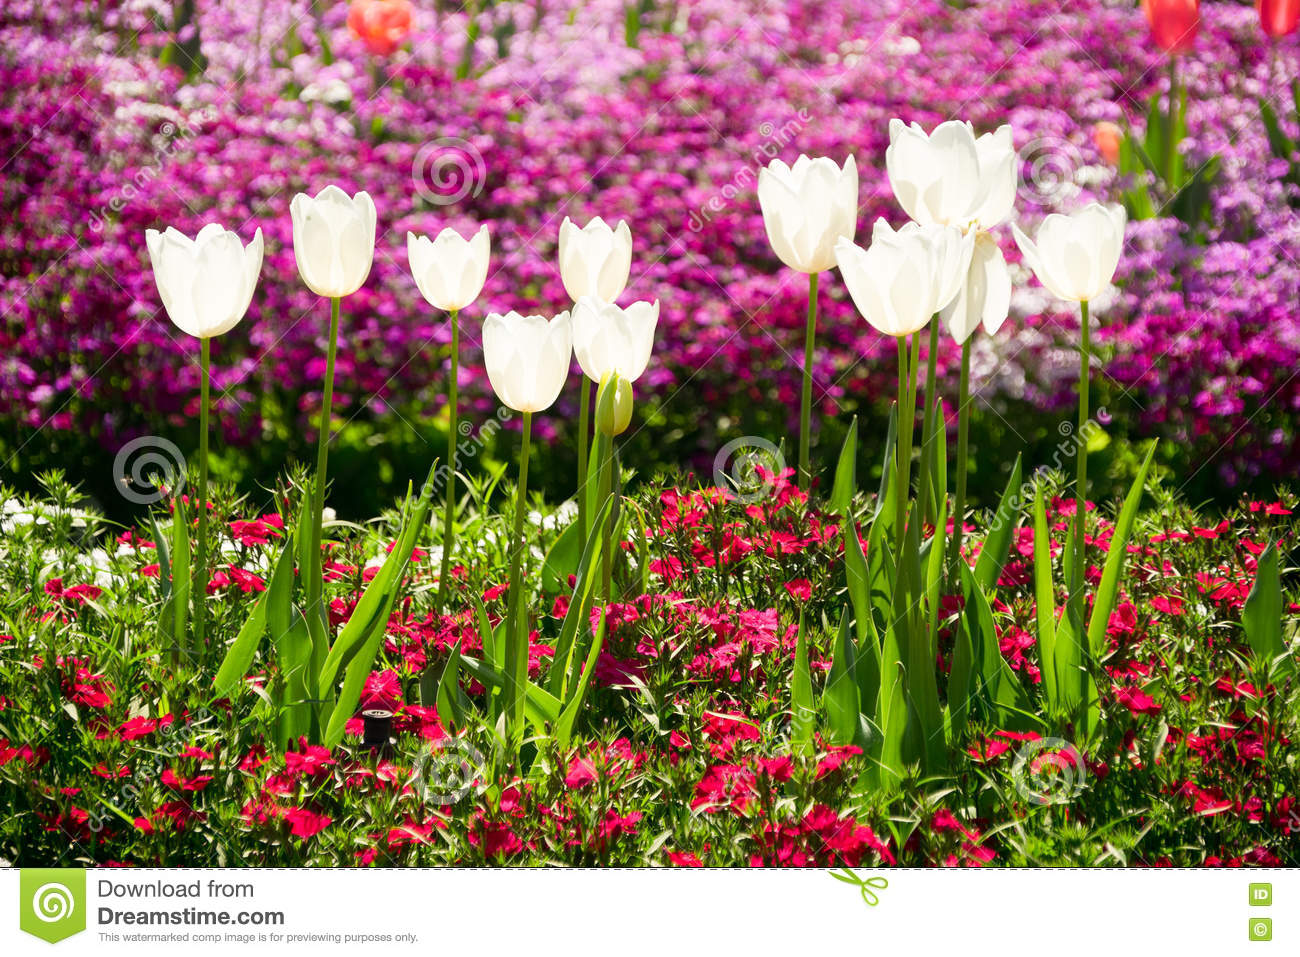 Toowoomba flower festival tulip flowers stock image image of beautiful white tulips on display at the 2016 toowoomba flower festival in toowoomba in queensland in australia this is an annual festival displaying izmirmasajfo